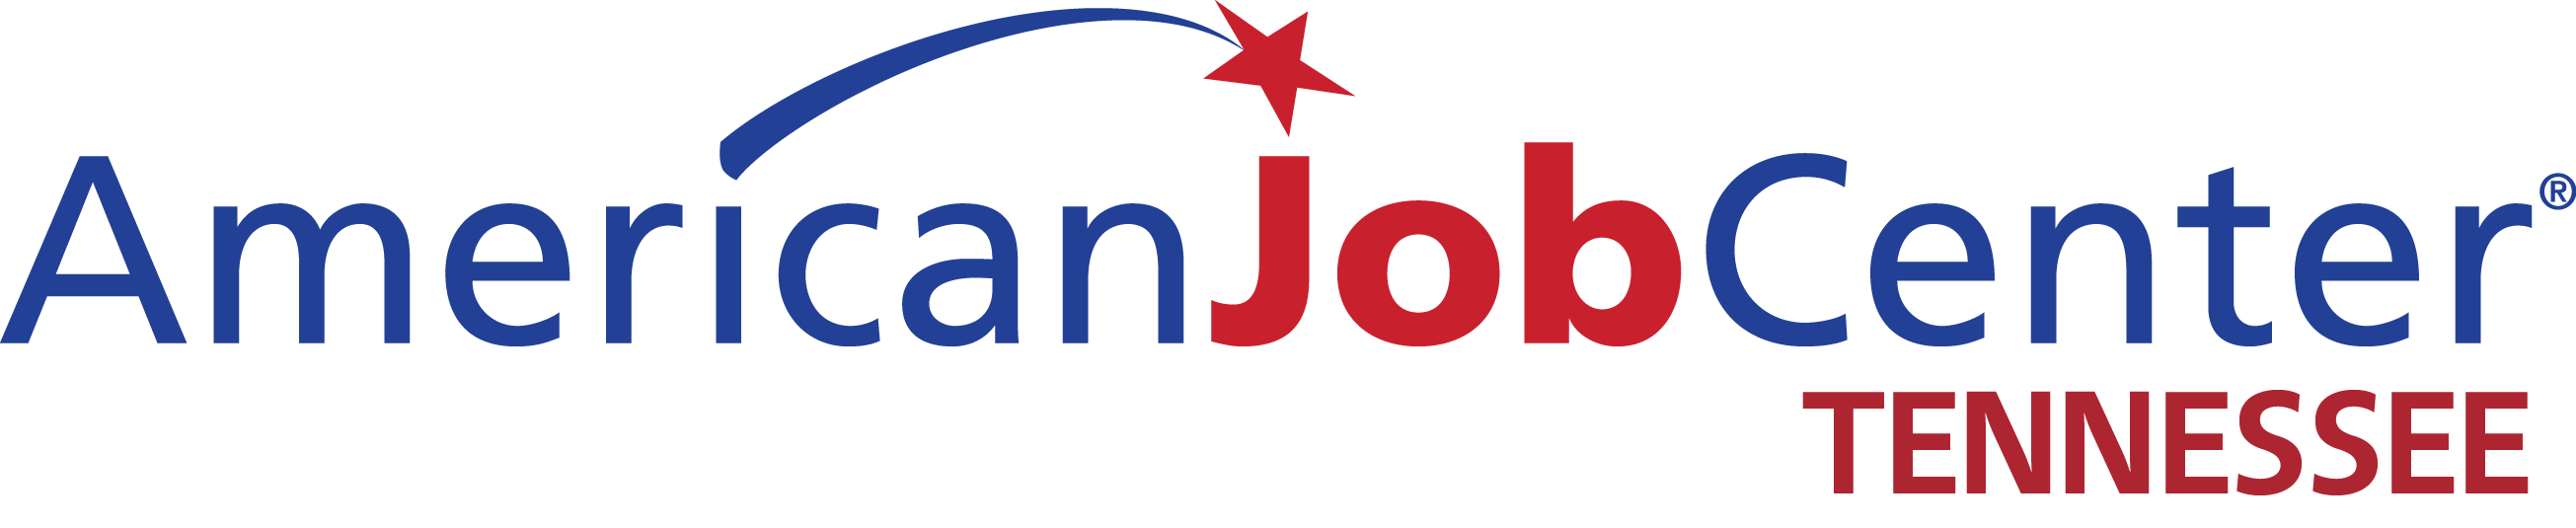 American Job Center Tennessee